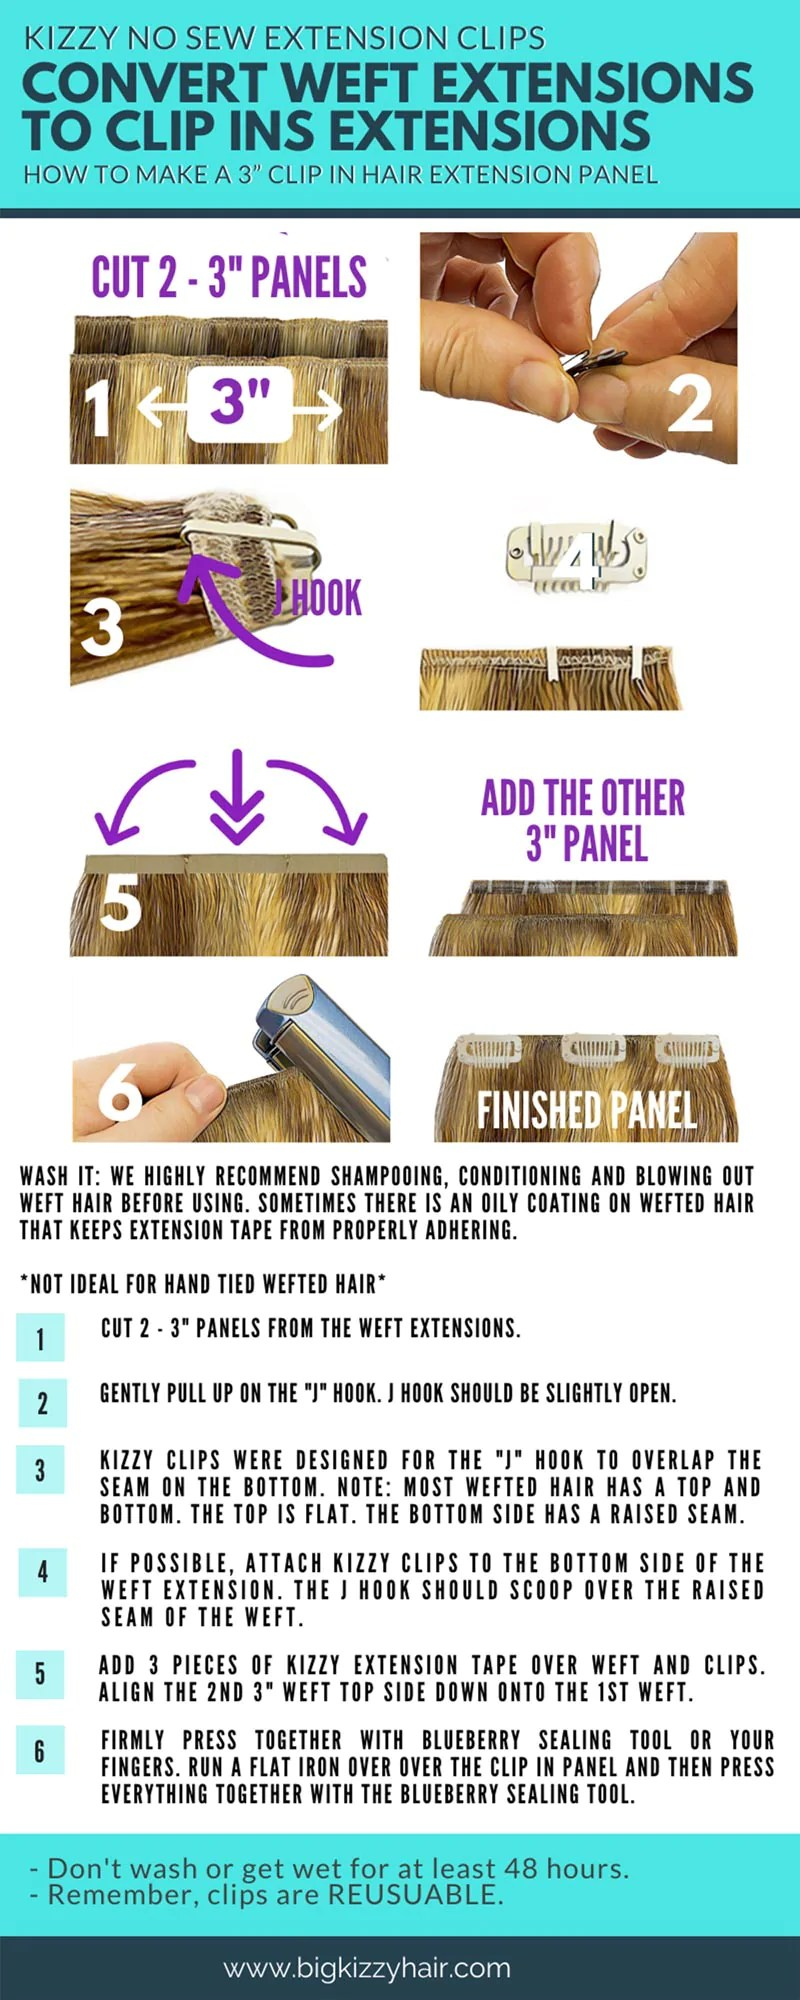 Diy Clip In Hair Extensions : extensions, Convert, Extensions, KIZZY